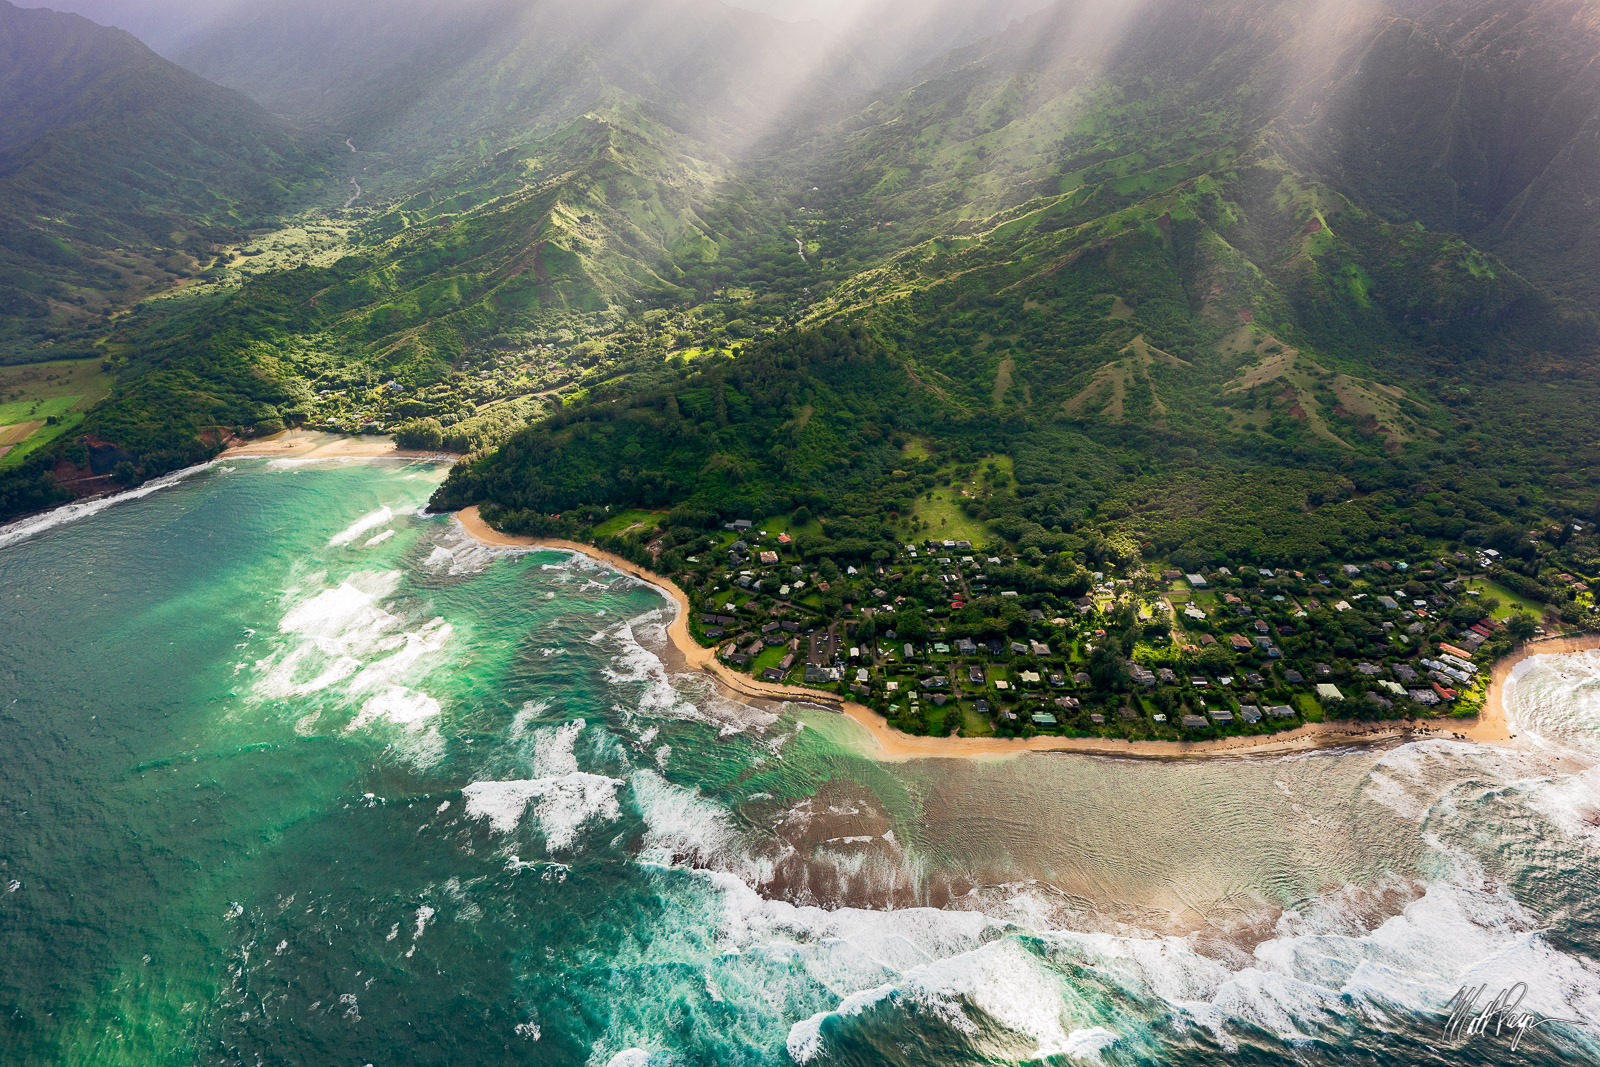 Diffused sun rays cast amazing light onto the town of Hanalei in Kauai as seen from above in a helicopter.Photo © copyright...